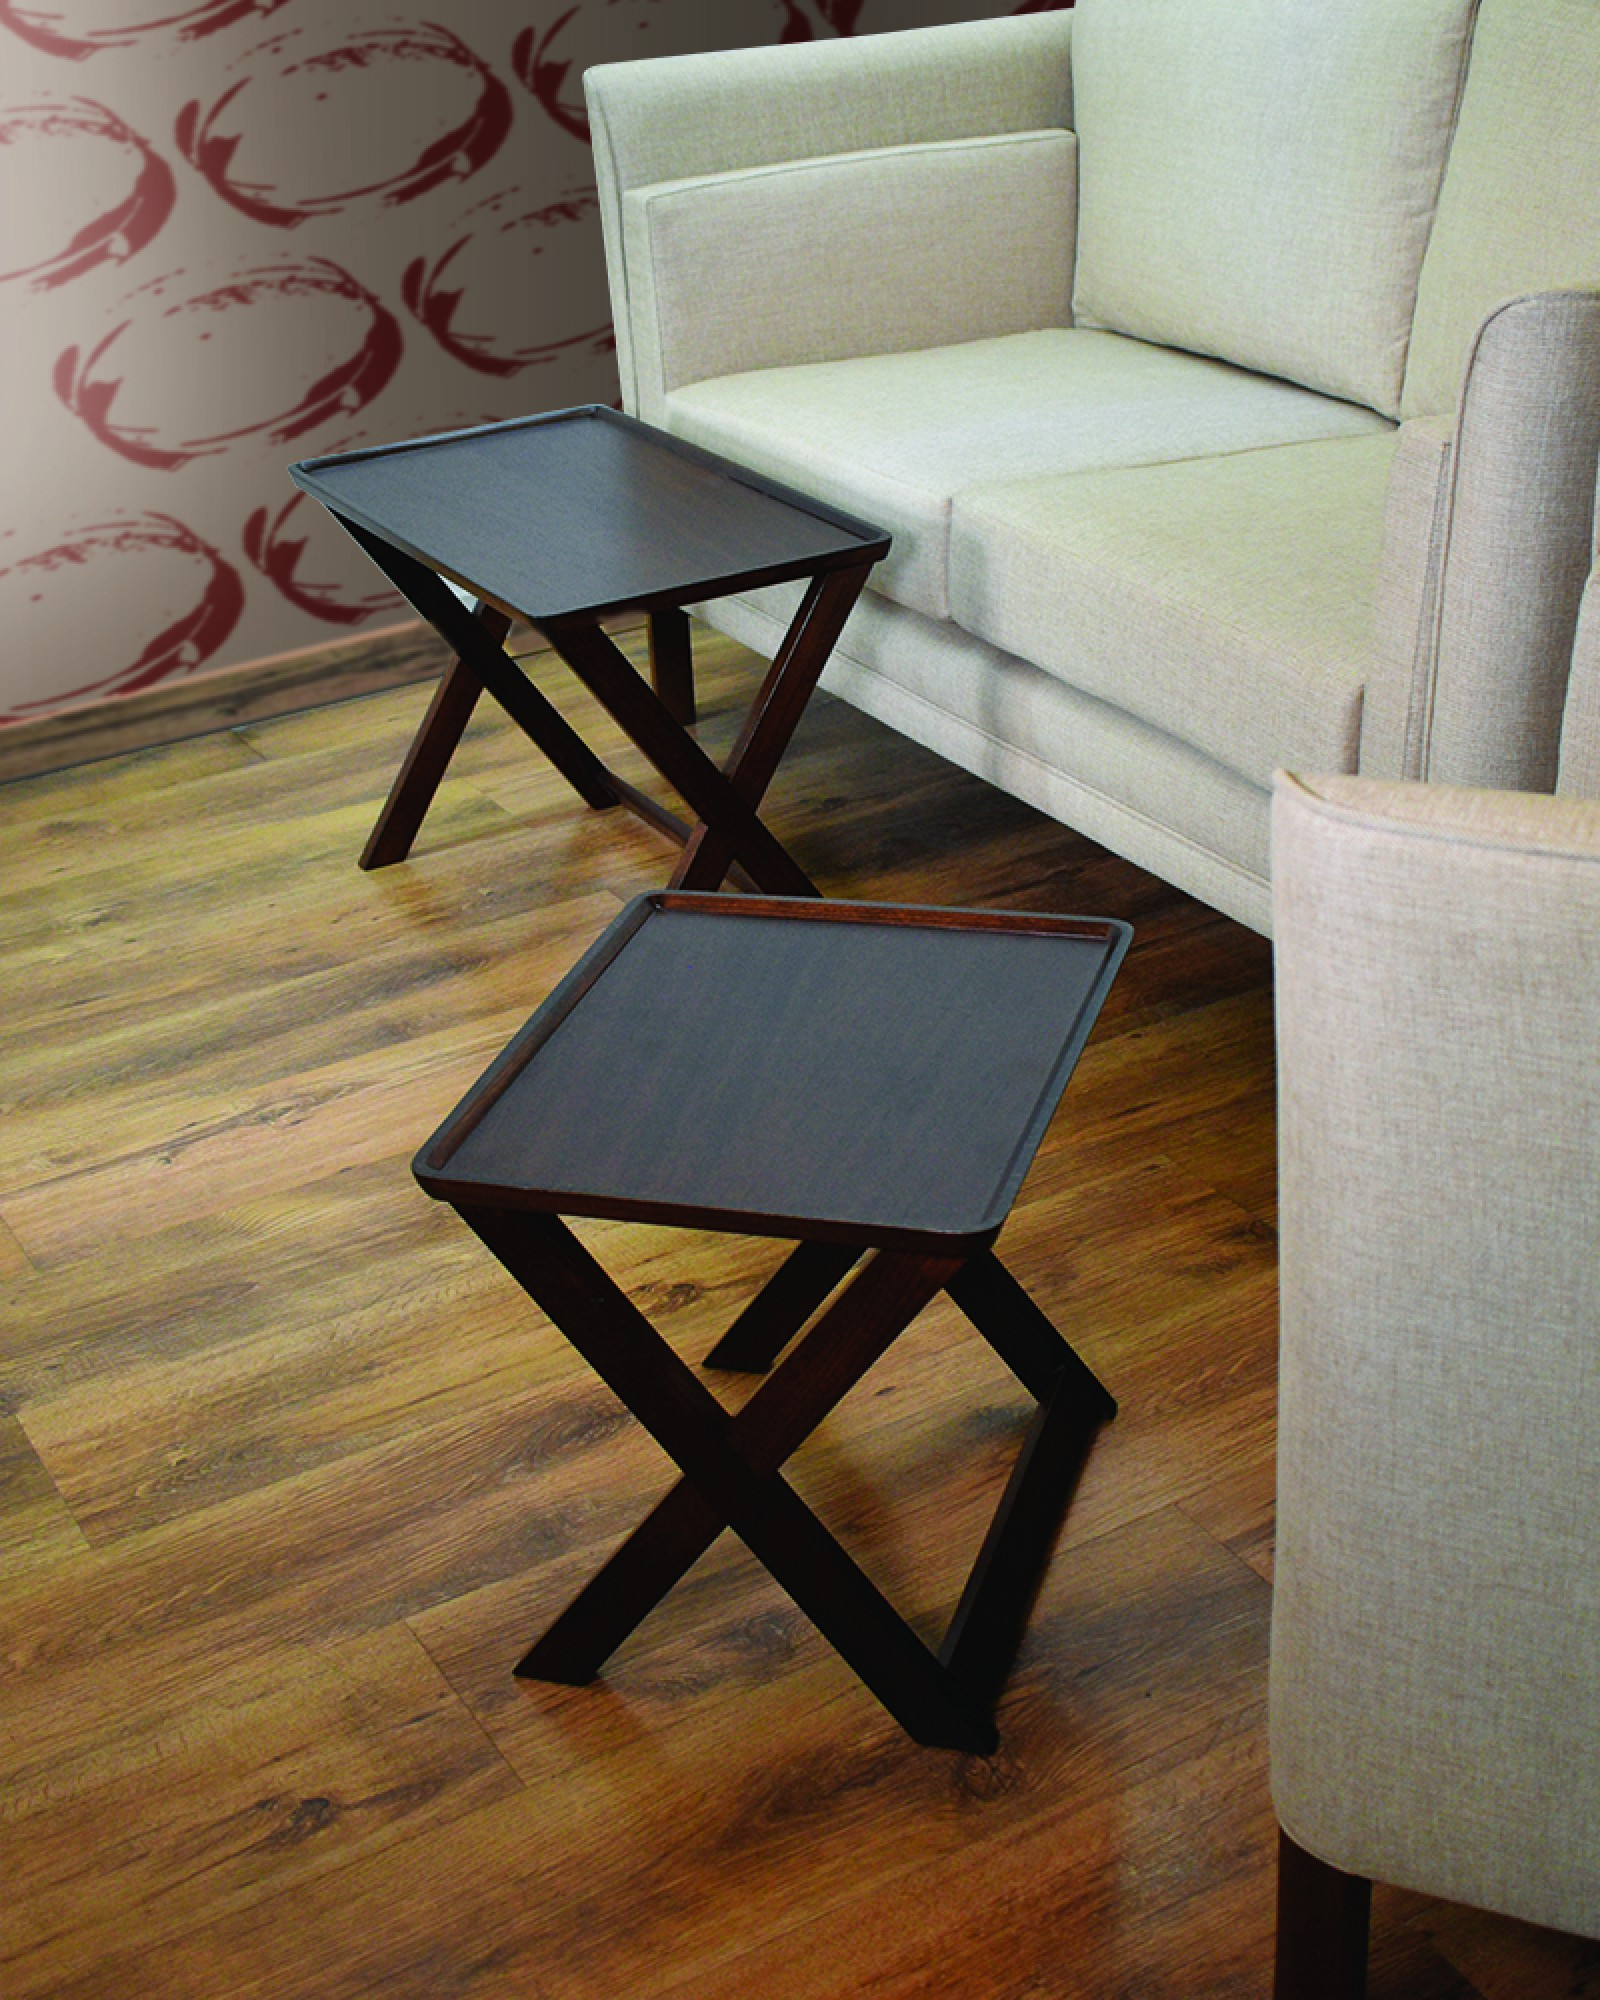 CROSS NESTING TABLES